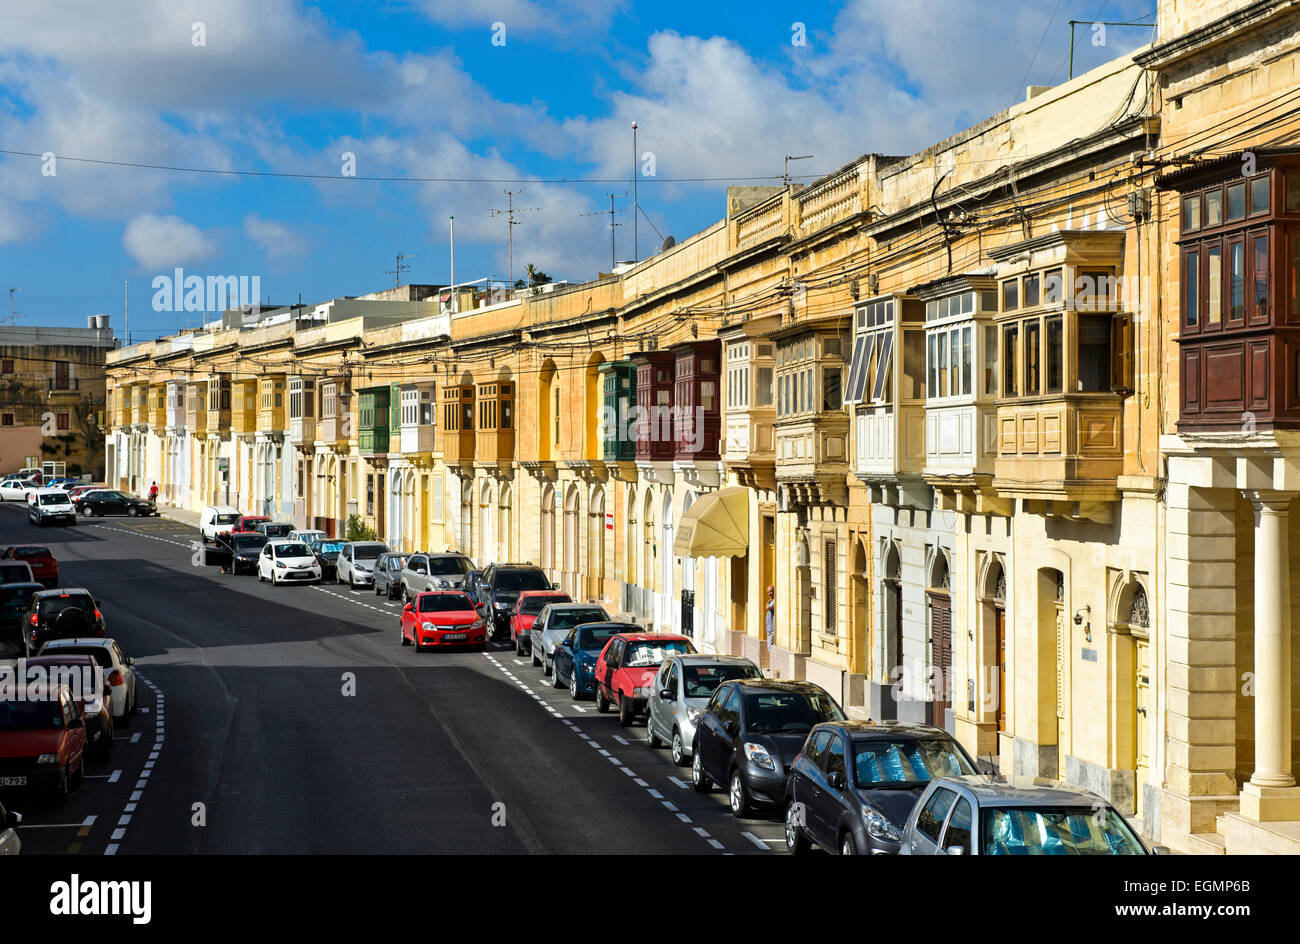 Traditional houses with bay windows, Valletta, Malta - Stock Image